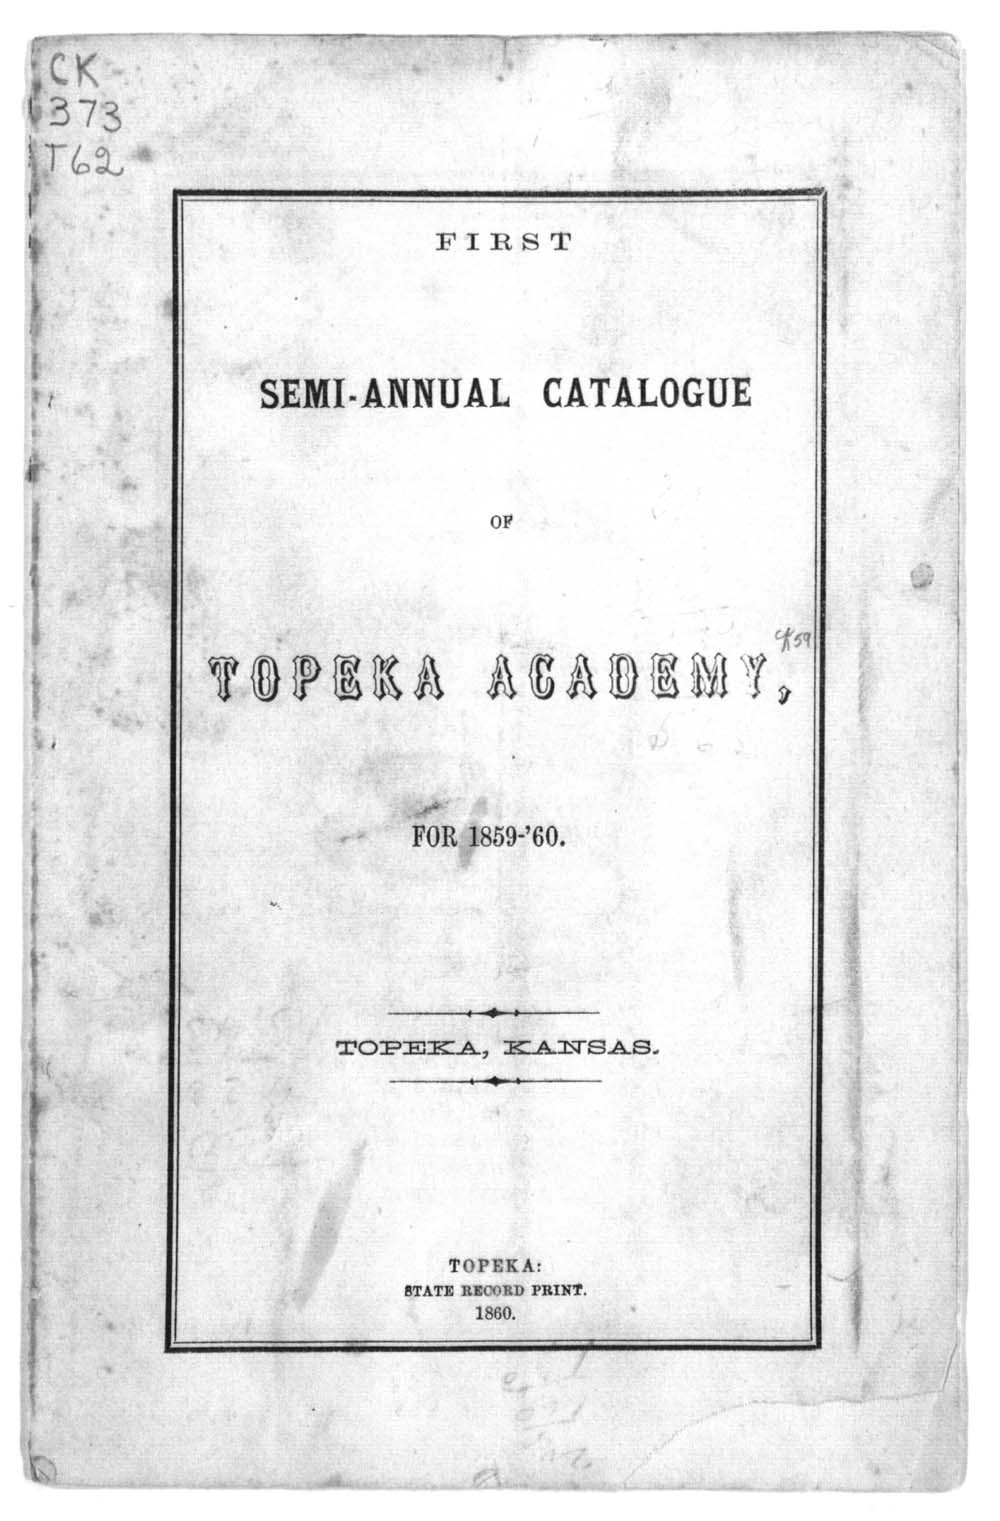 First semi-annual catalogue of Topeka Academy - 1